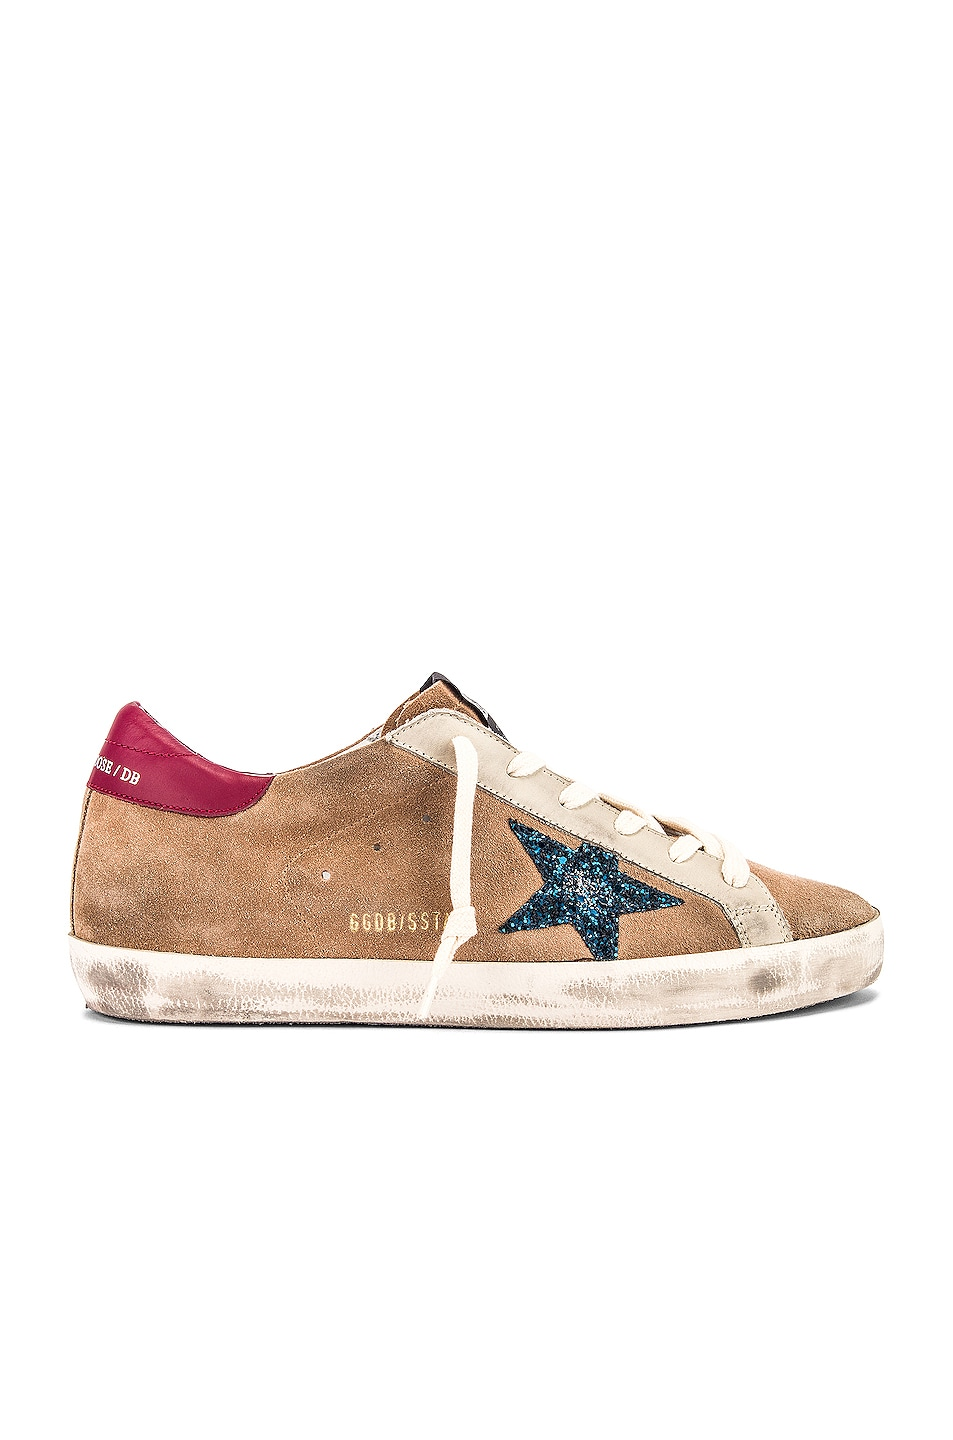 Image 1 of Golden Goose Superstar Sneaker in Desert Suede & Blue Glitter